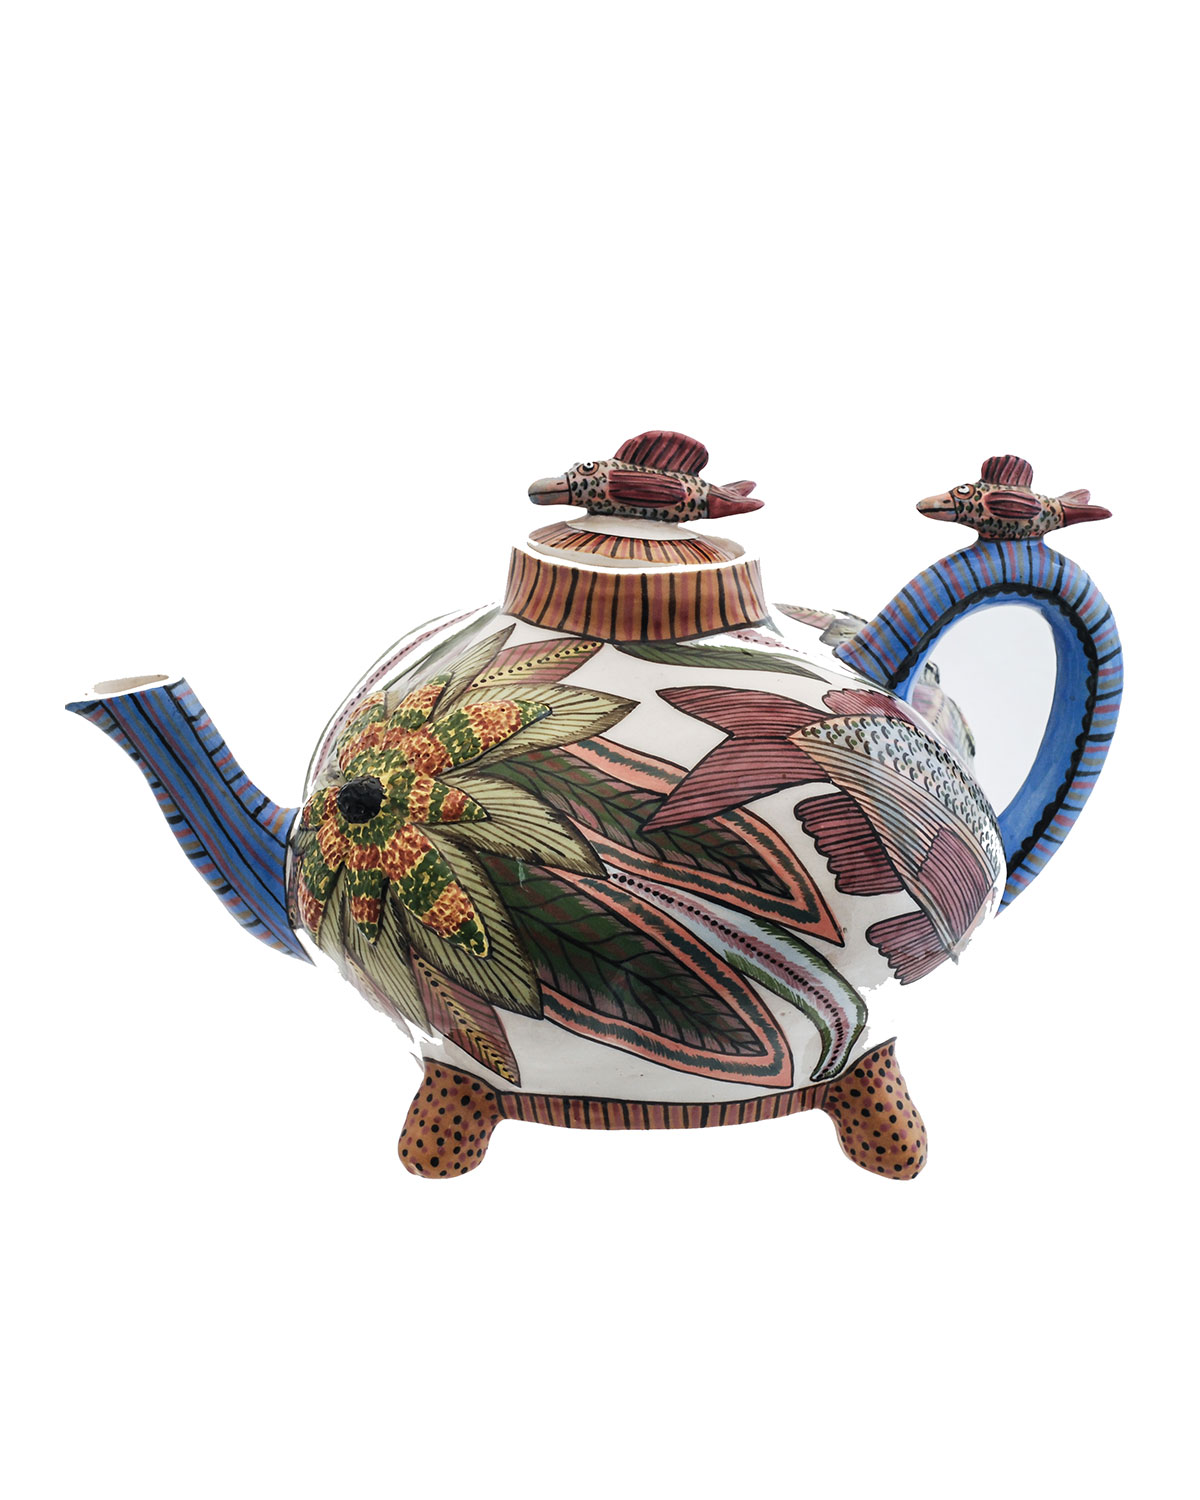 Ardmore Ceramic Art Fish Teapot